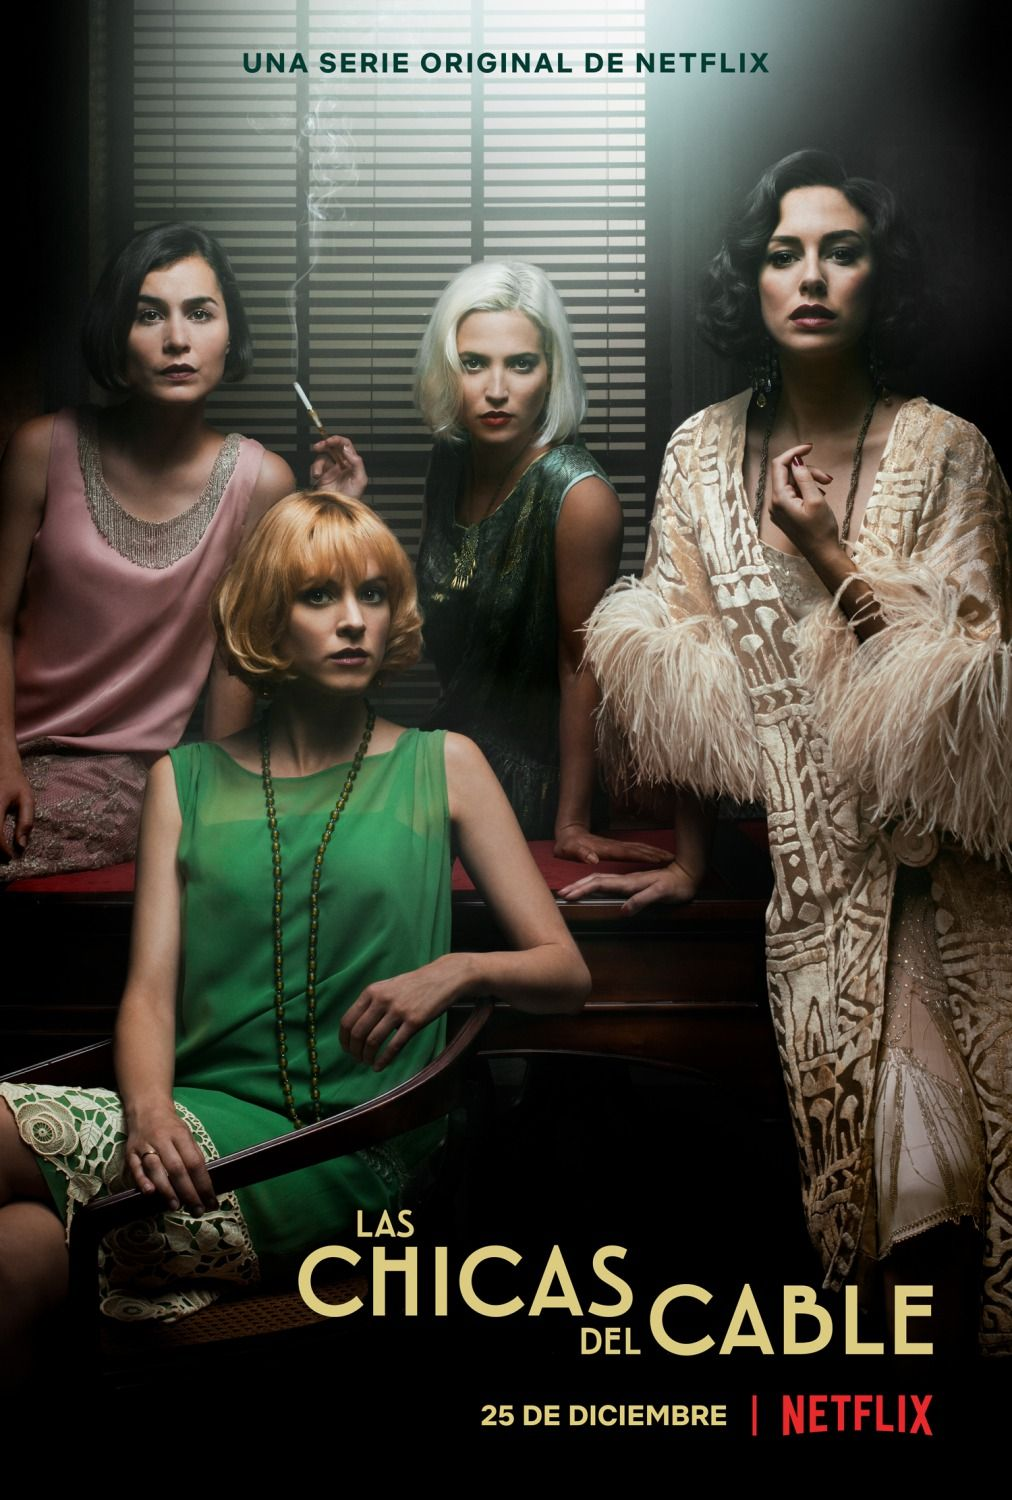 Return To The Main Poster Page For Las Chicas Del Cable 2 Of 3 Las Chicas Del Cable Series Para Chicas Chicas